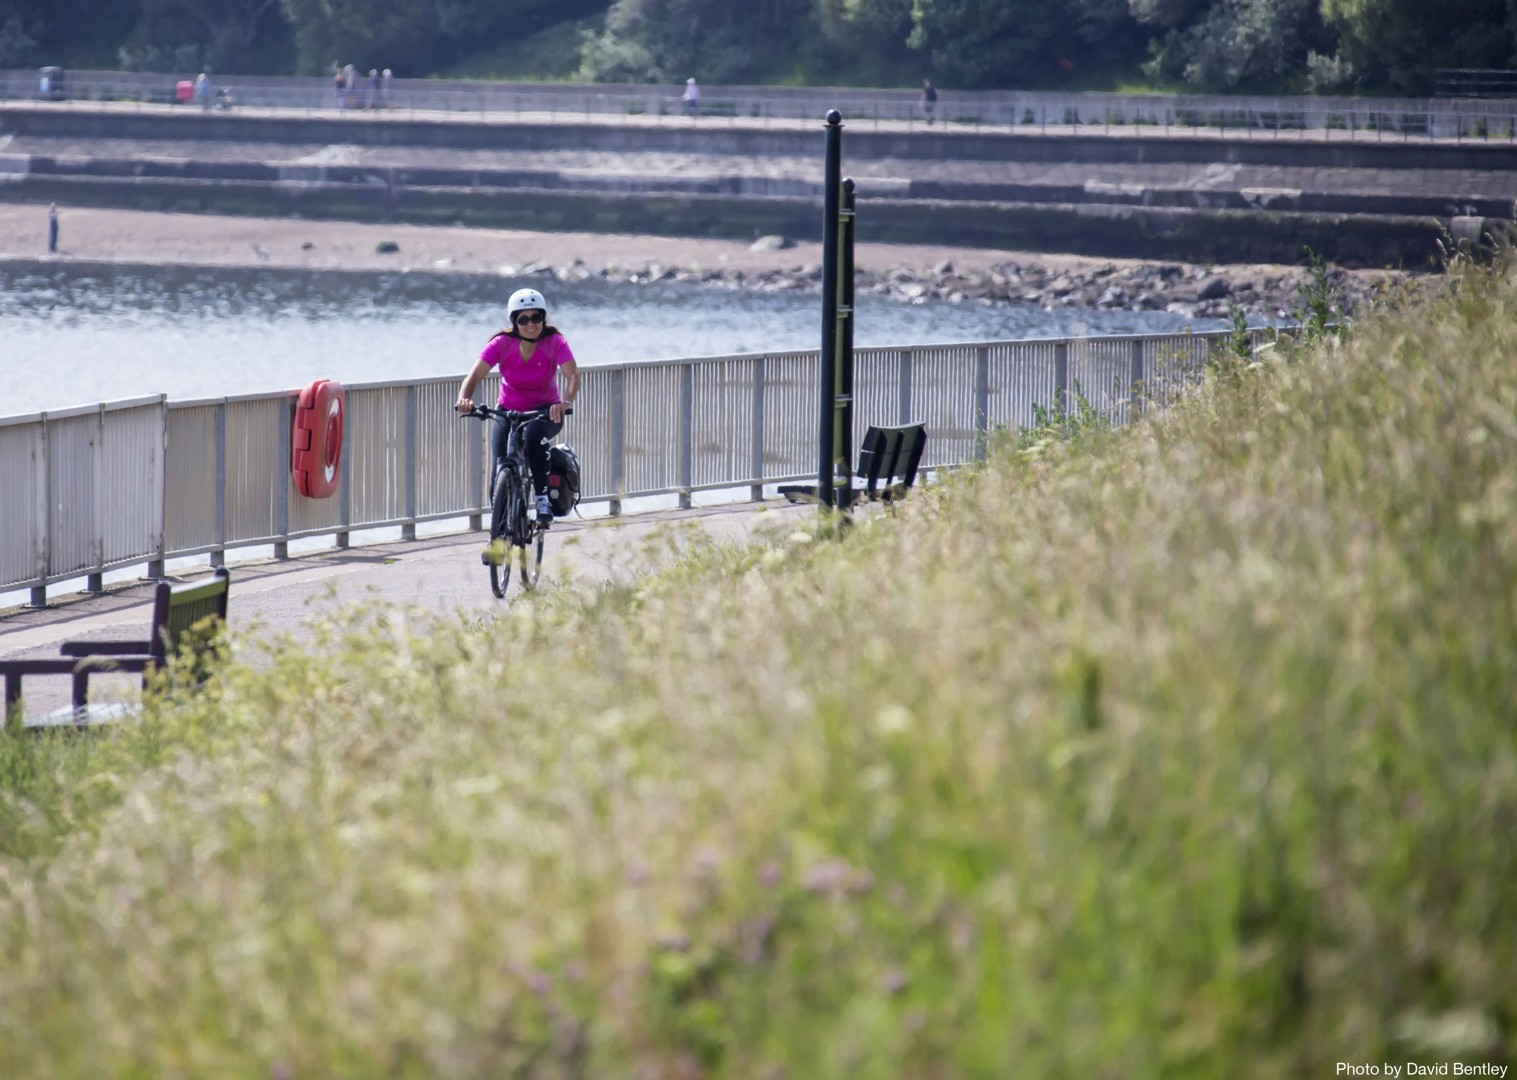 Self-Guided-Leisure-Cycling-Holiday-Hadrians-Cycleway-UK-cycle-Tynemouth.jpg - UK - Hadrian's Cycleway - 2 Days Cycling - Self-Guided Leisure Cycling Holiday - Leisure Cycling